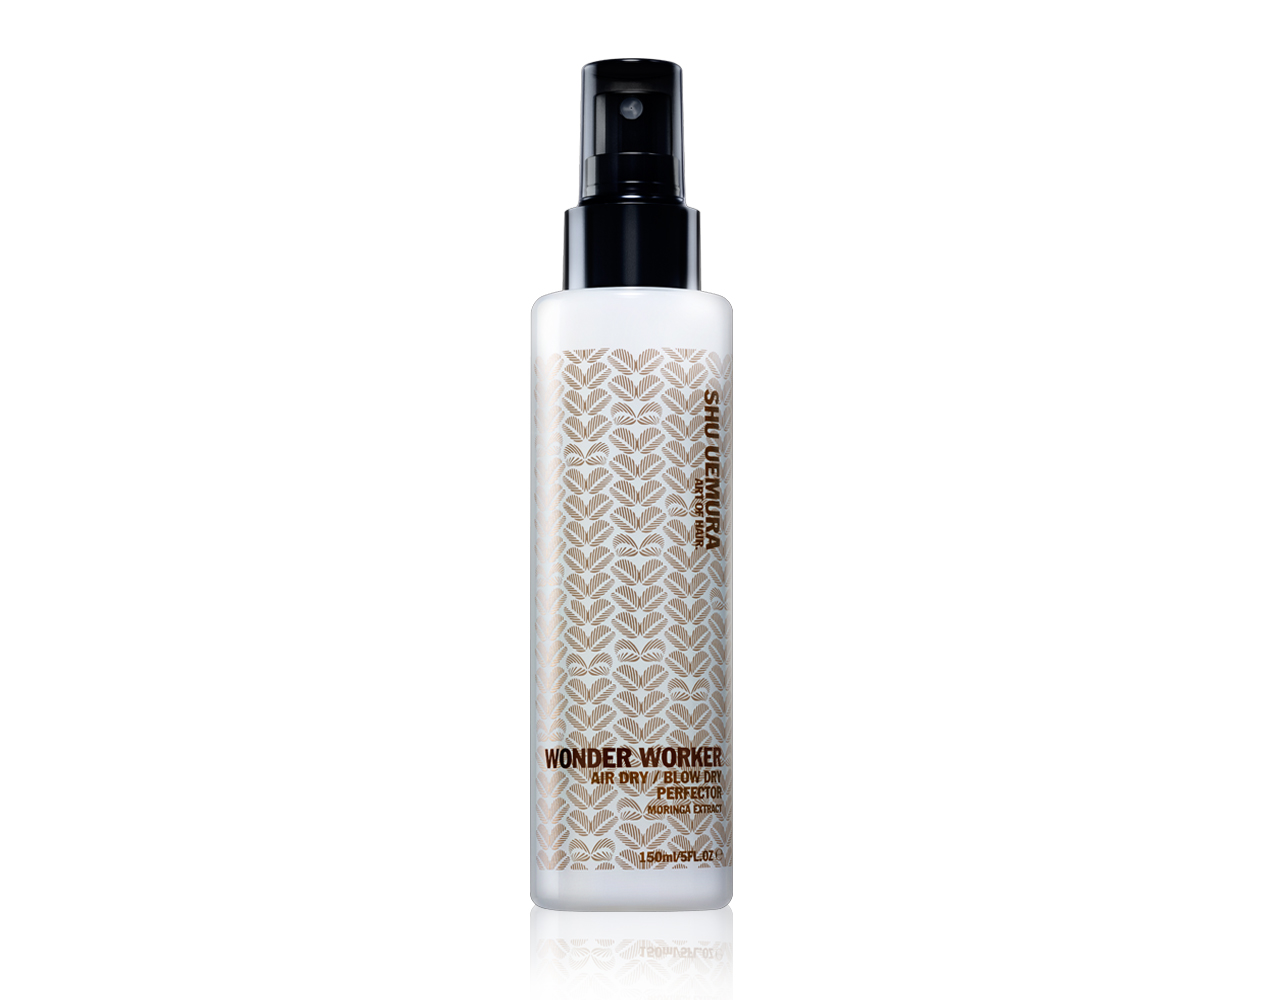 Shu Uemura WONDER WORKER AIR DRY BLOW DRY MULTI TASKING PRIMER